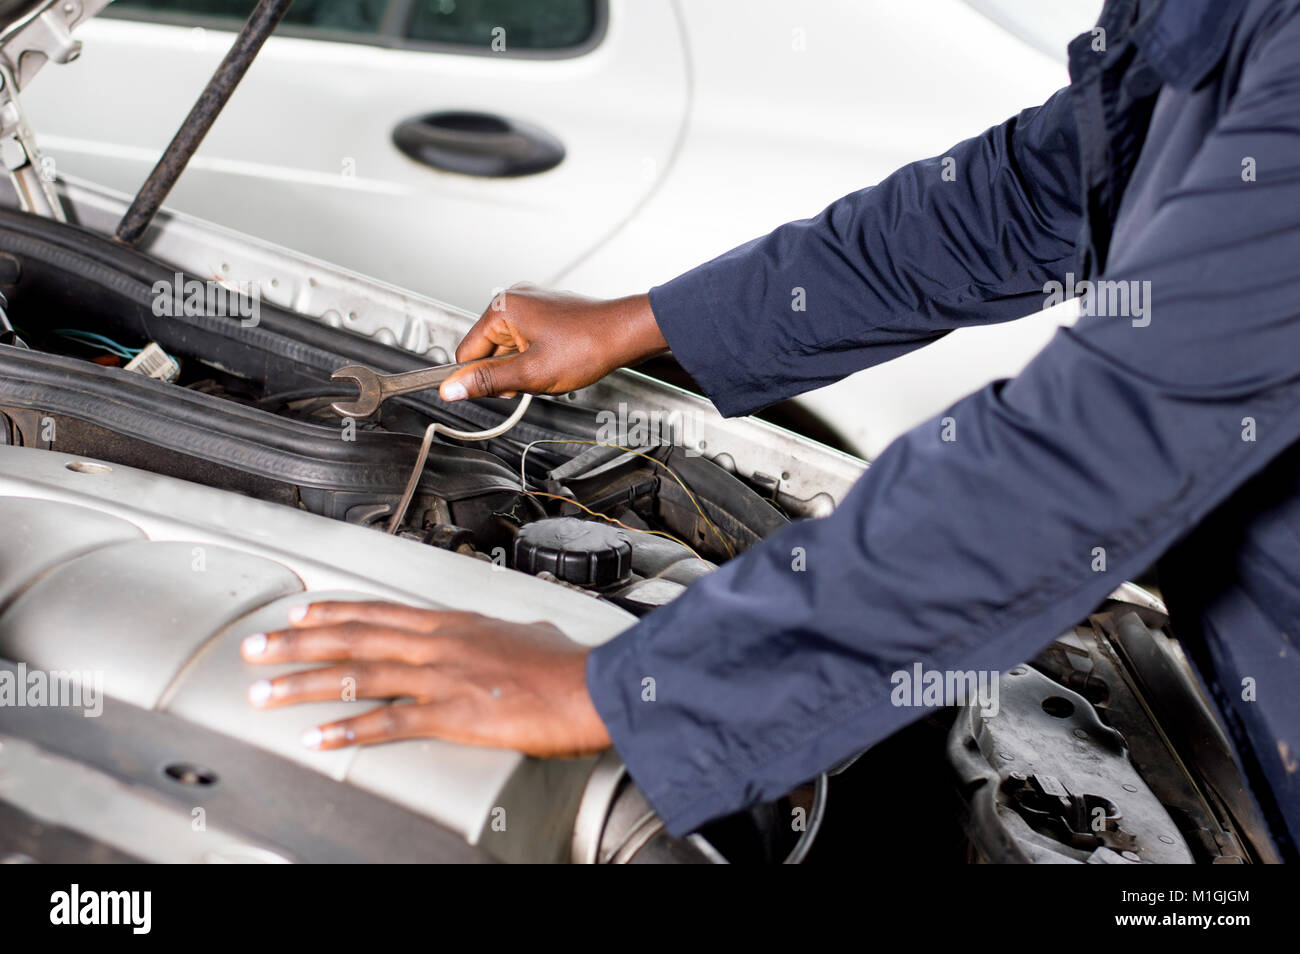 Closeup  of a hand holding a key on the engine of a broken car. - Stock Image